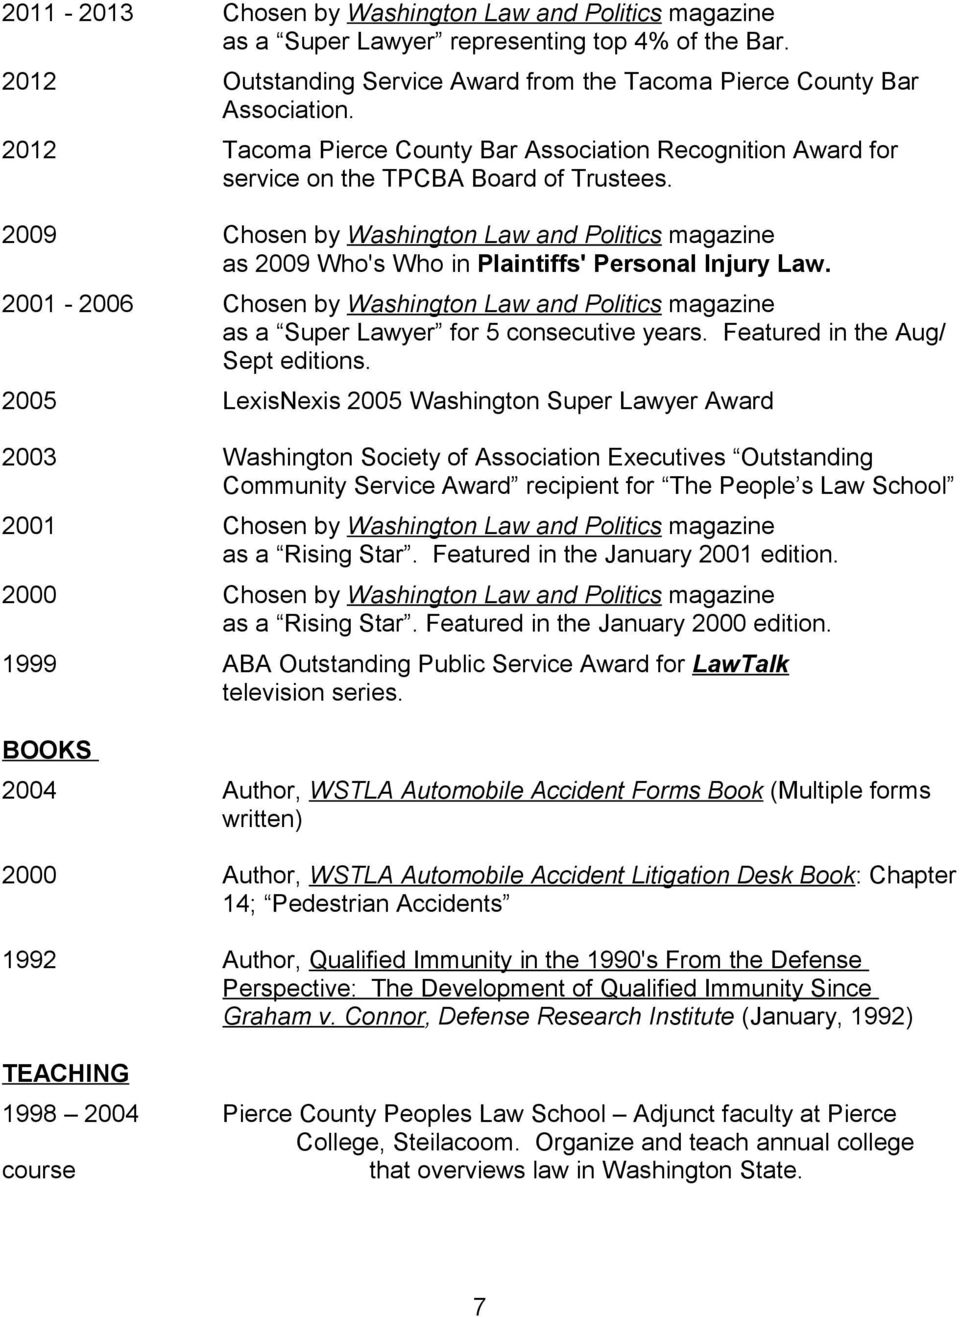 2009 Chosen by Washington Law and Politics magazine as 2009 Who's Who in Plaintiffs' Personal Injury Law.